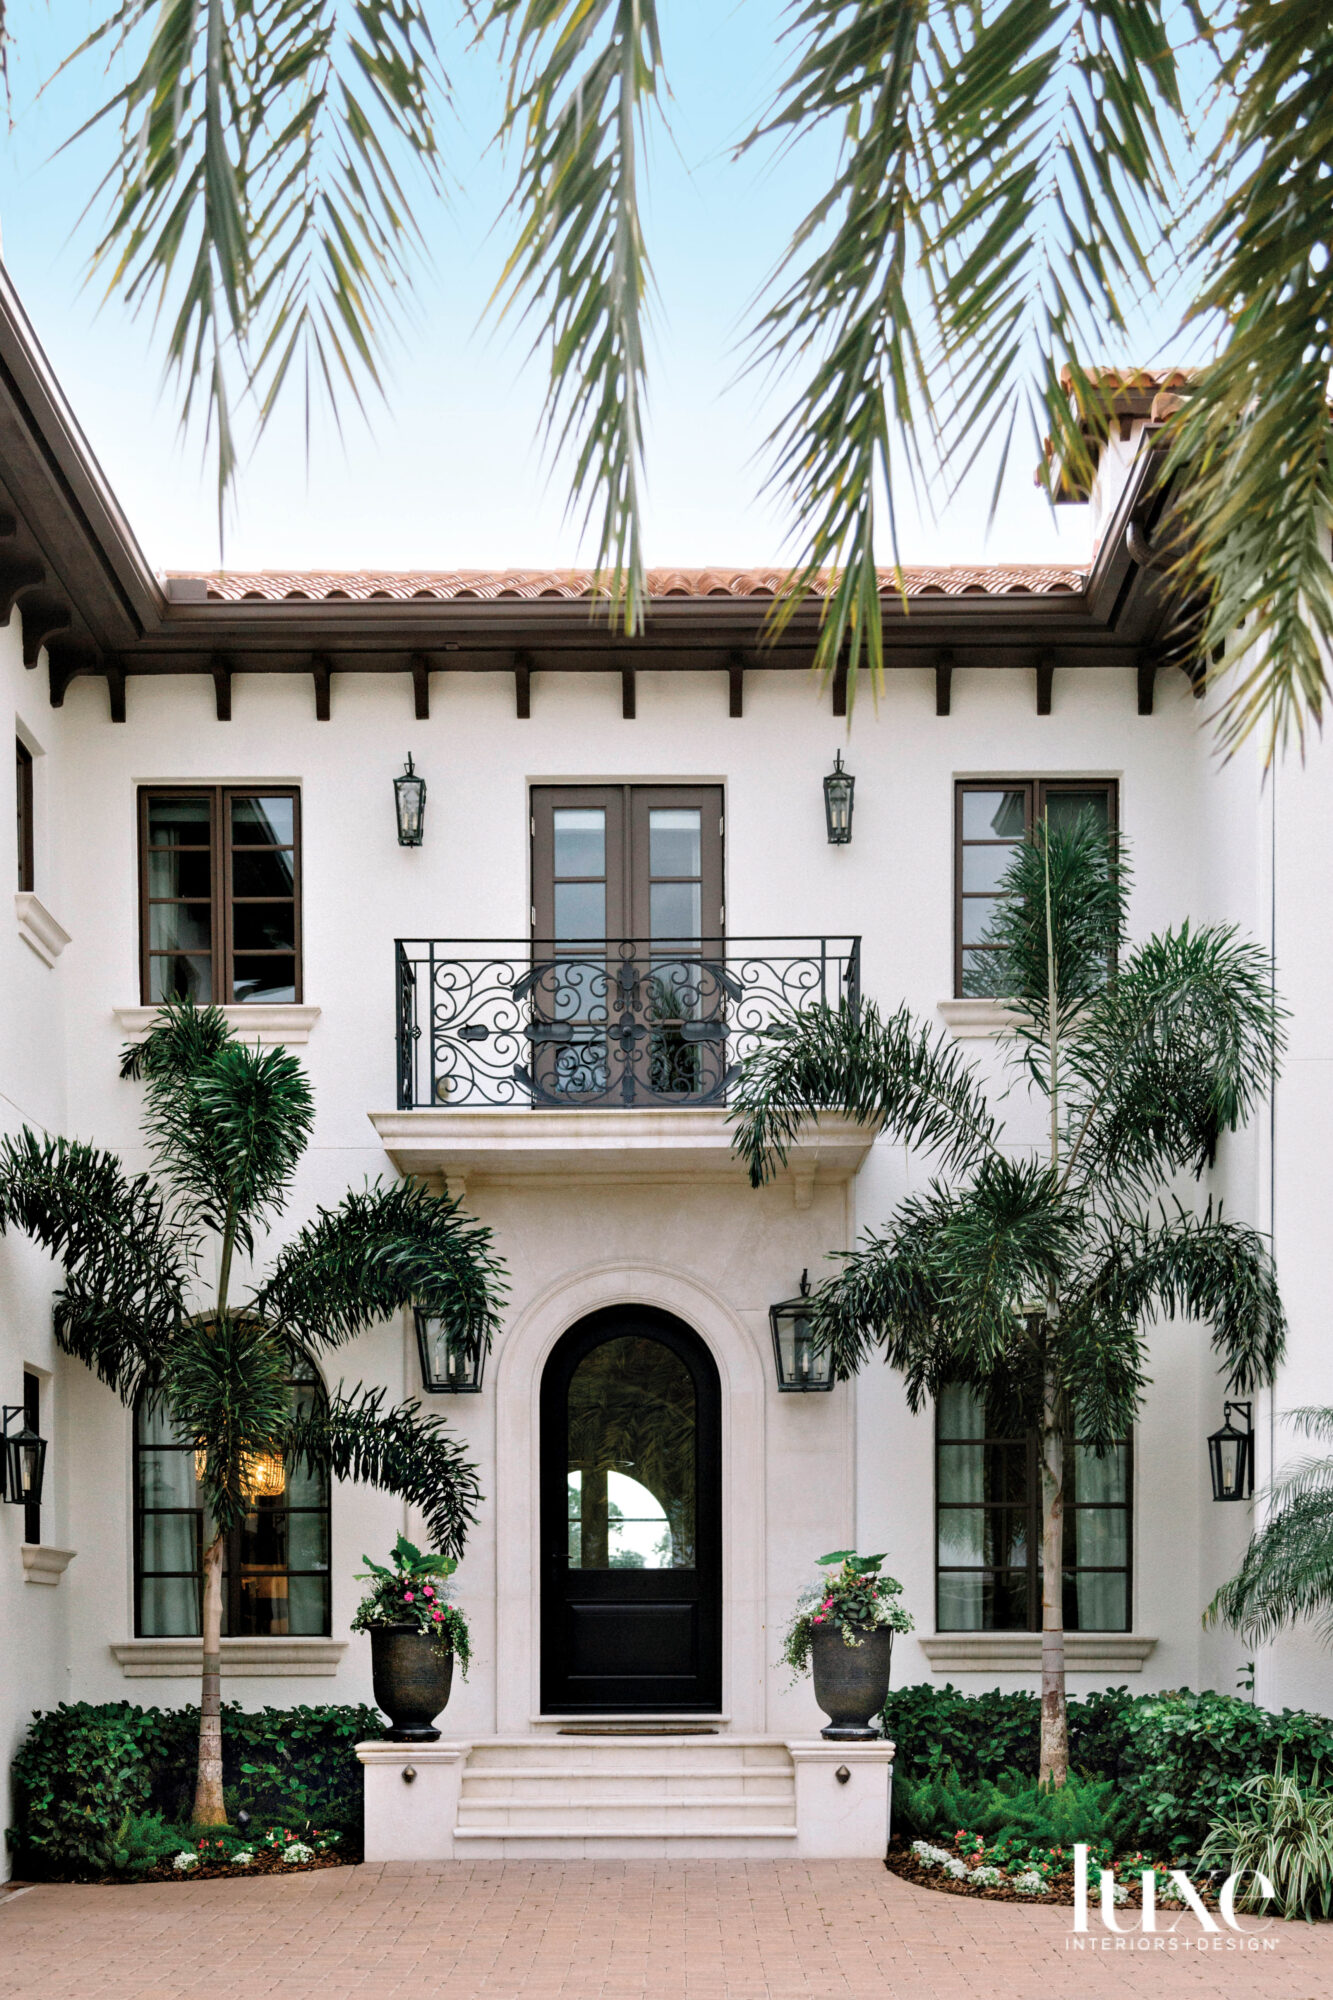 Mediterranean-style exterior of home with...